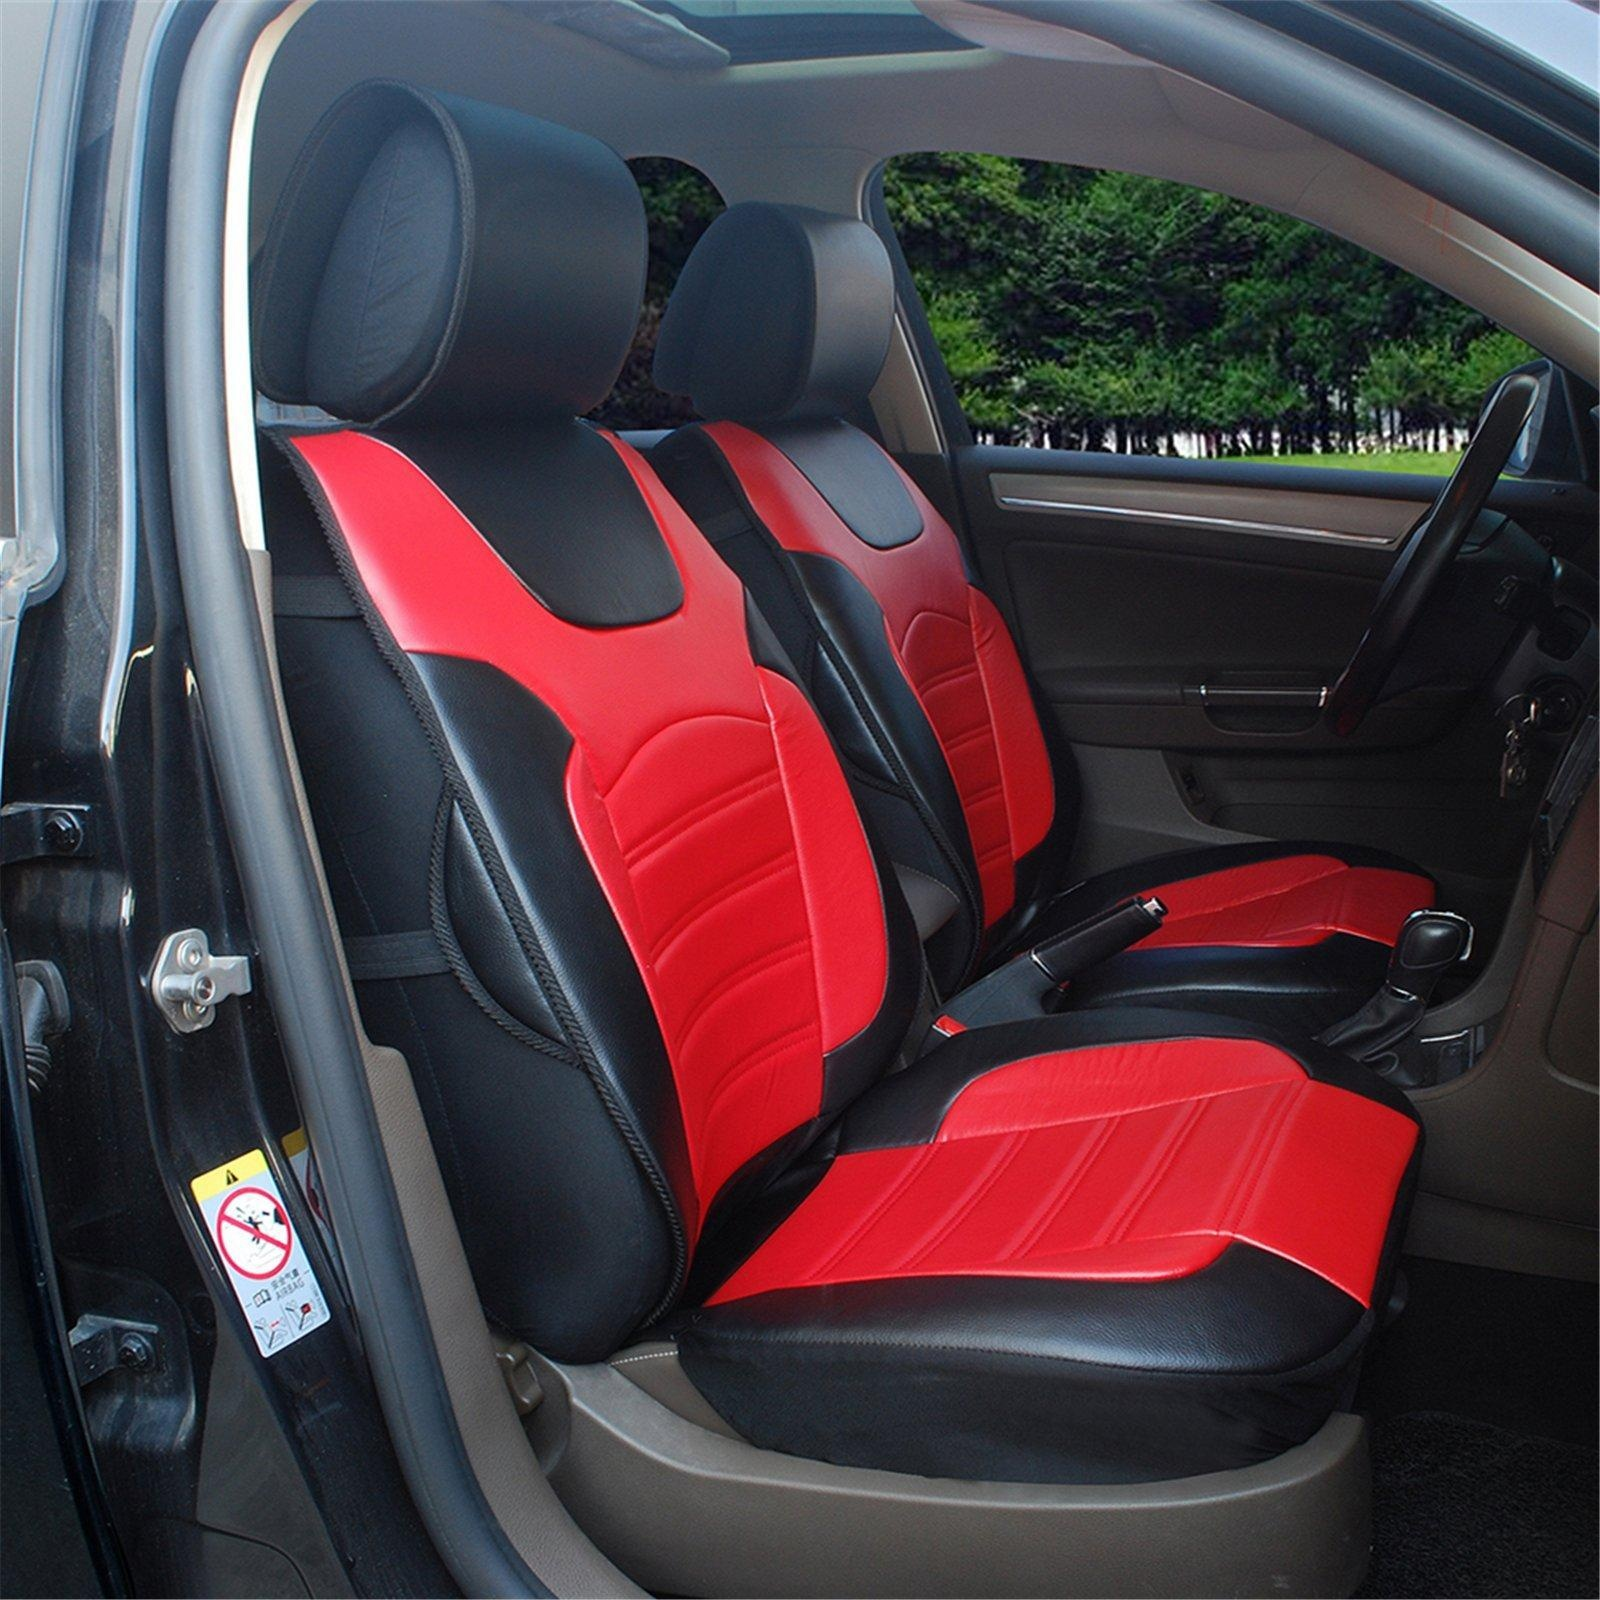 Bmwcarimage: Exciting Bmw Car Seat Covers